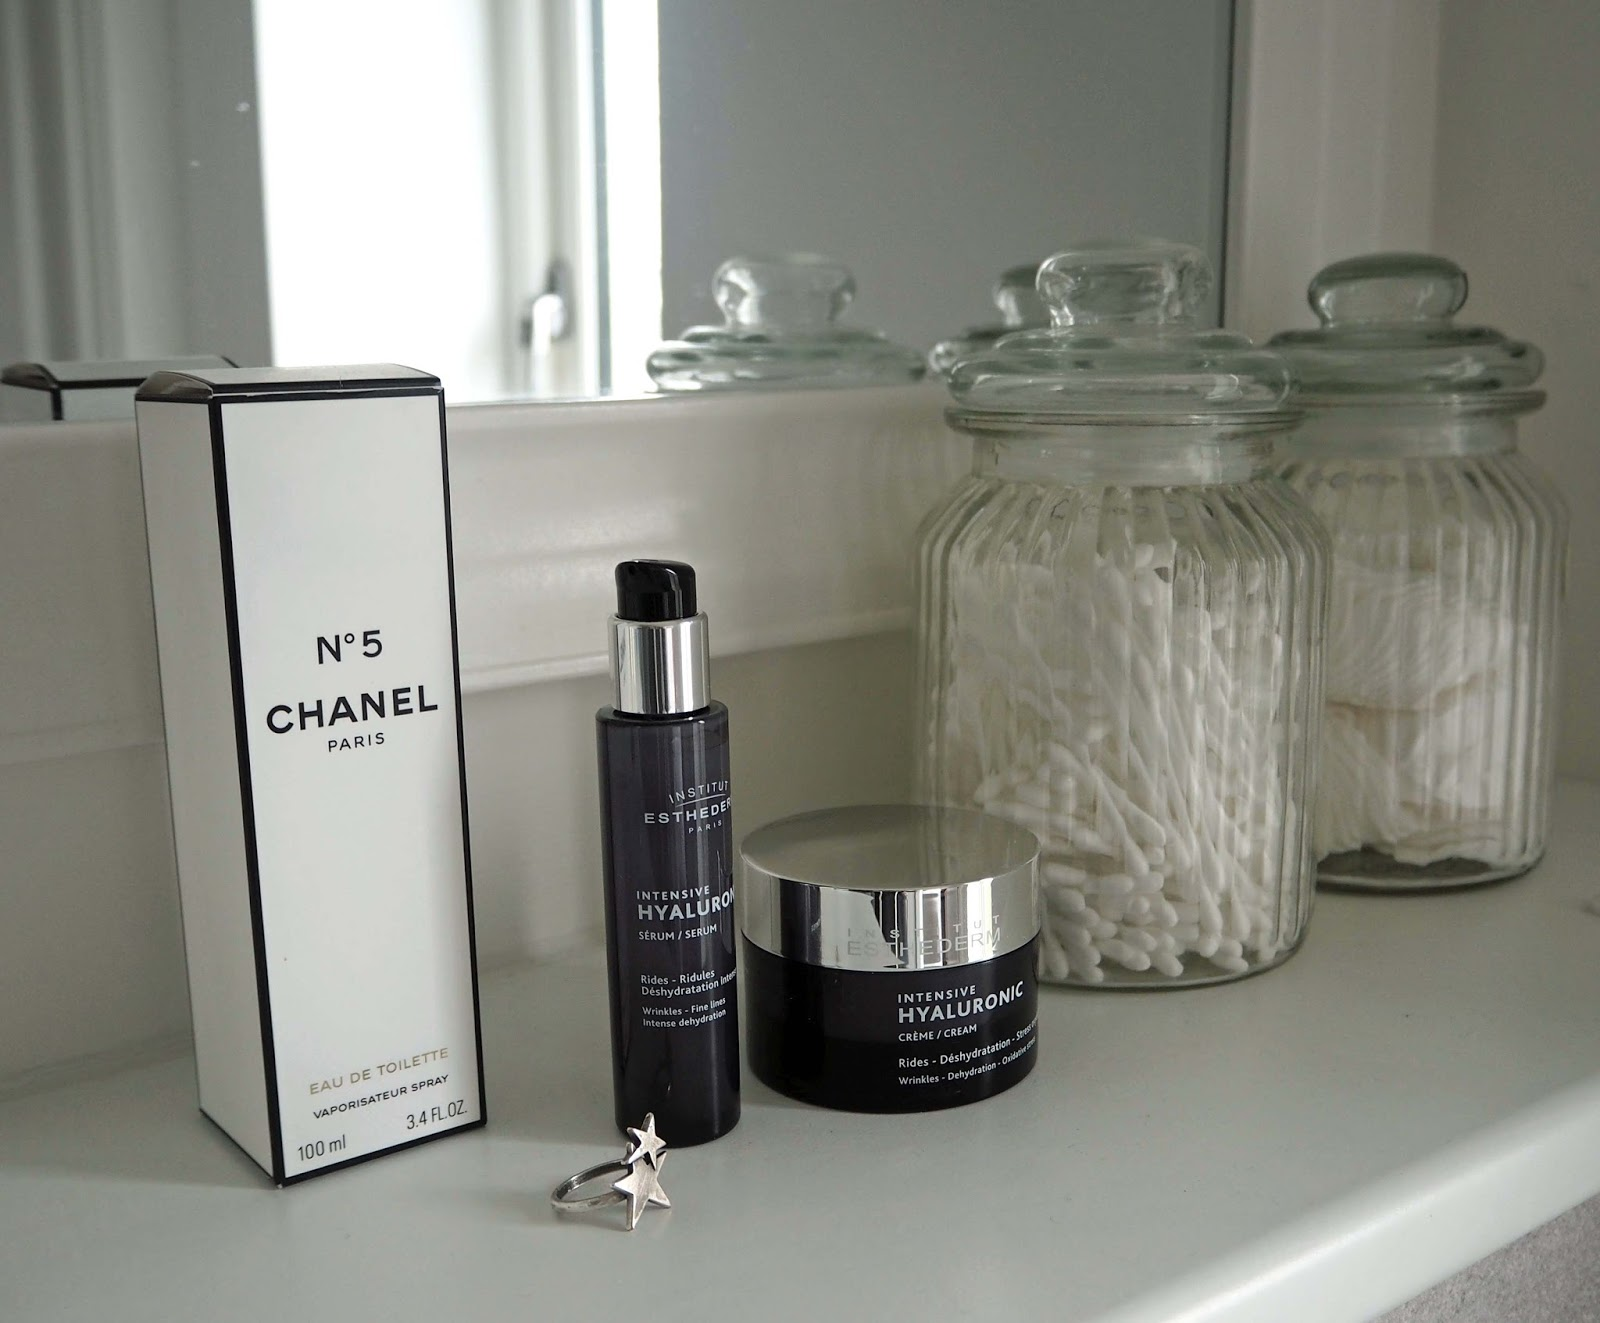 Esthederm creme and serum review, over 40 blog